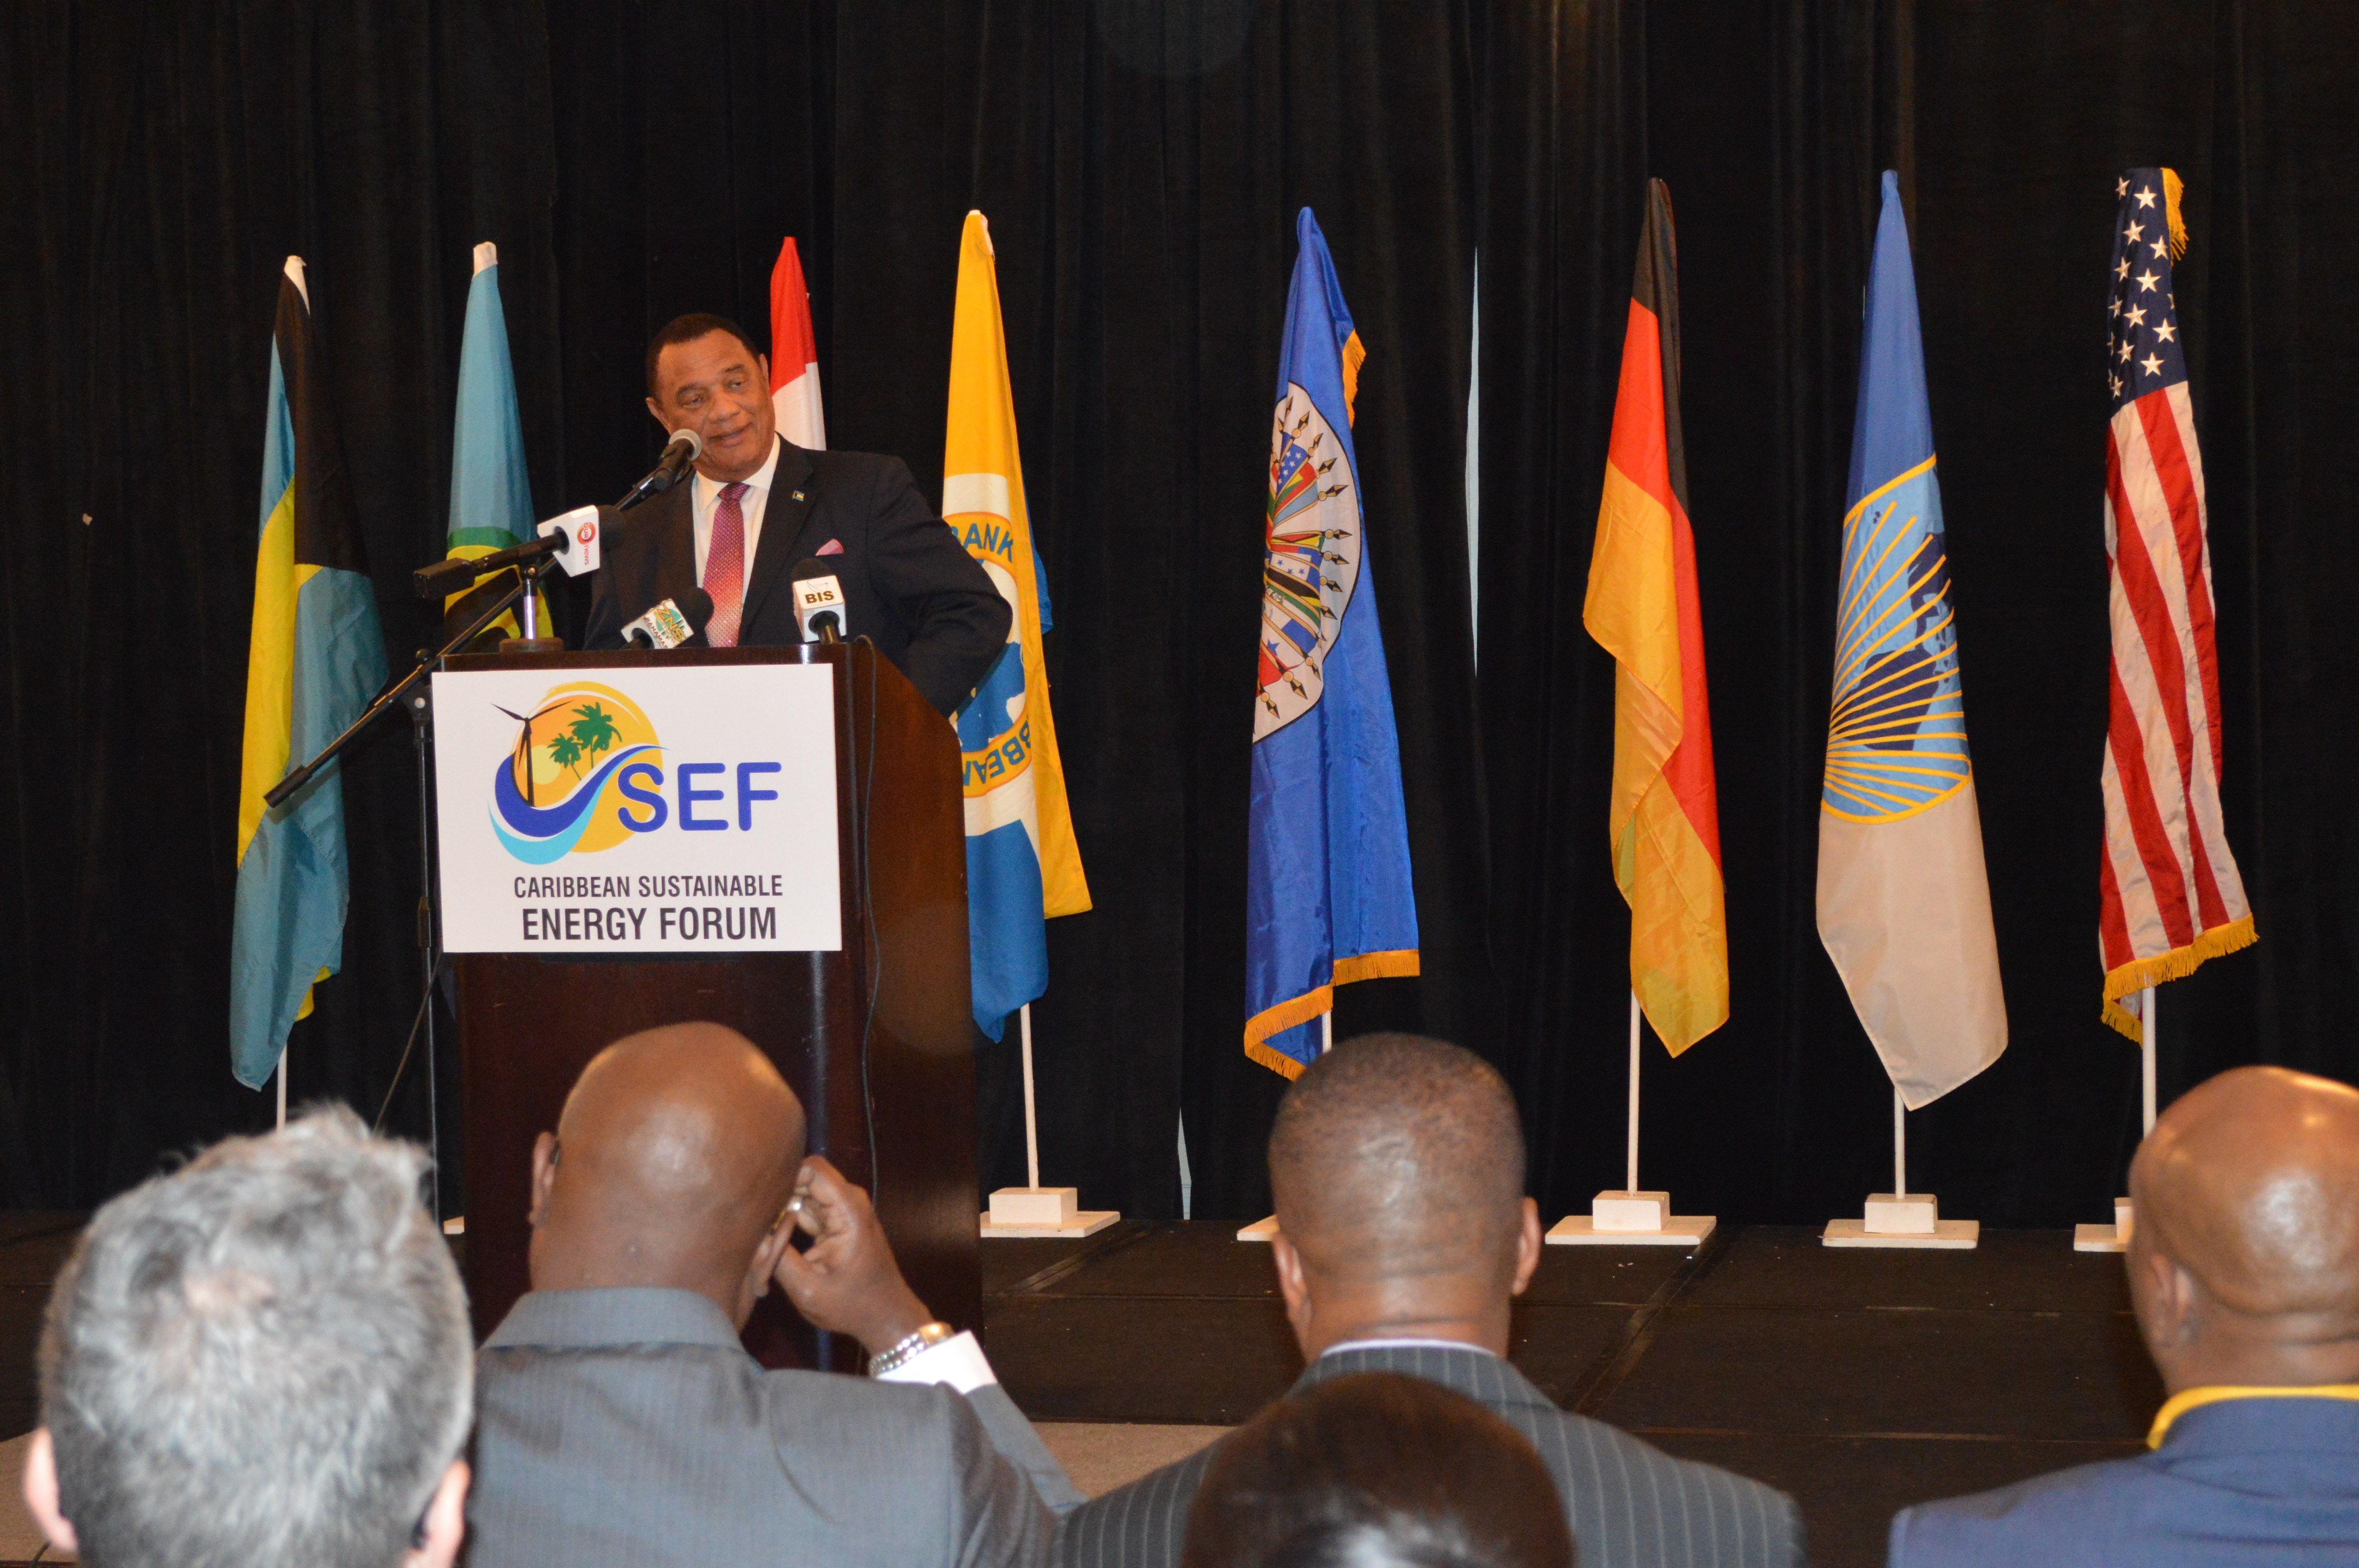 Prime Minister Perry Christie addresses the opening ceremony of CSEFV